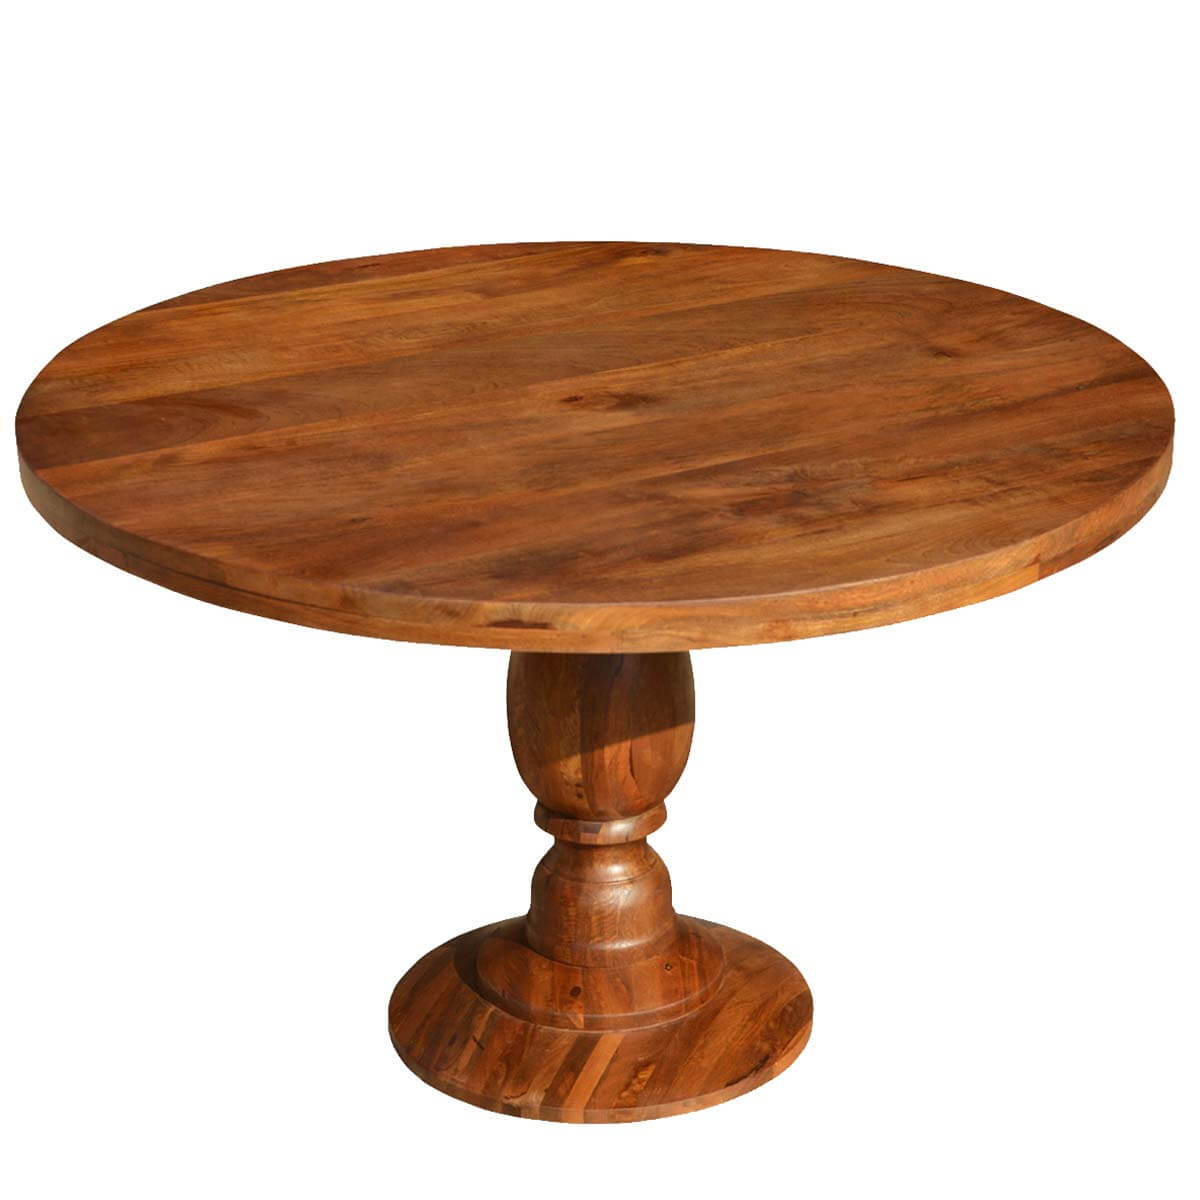 Rustic colonial american solid wood 48 round pedestal for Solid wood round tables dining